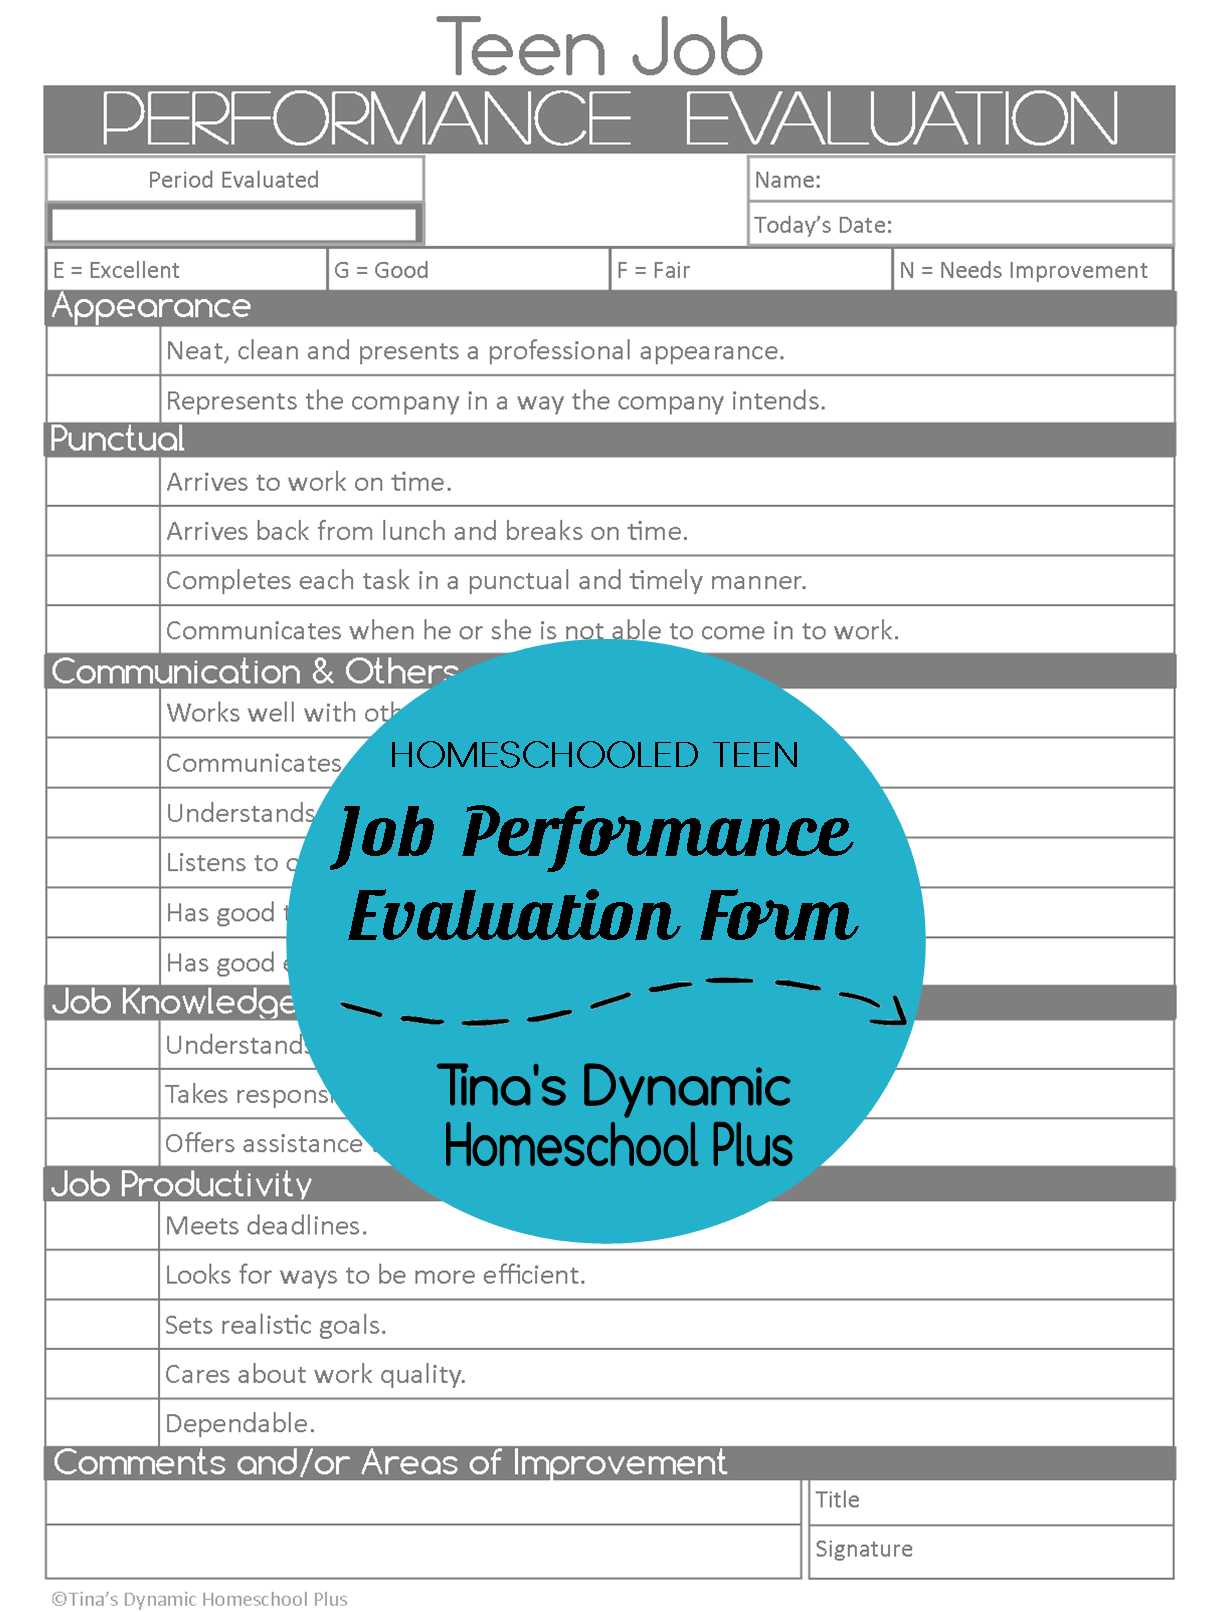 homeschooled teen job performance evaluation form homeschool homeschooled teen job performance evaluation form if need a form to add to your homeschool